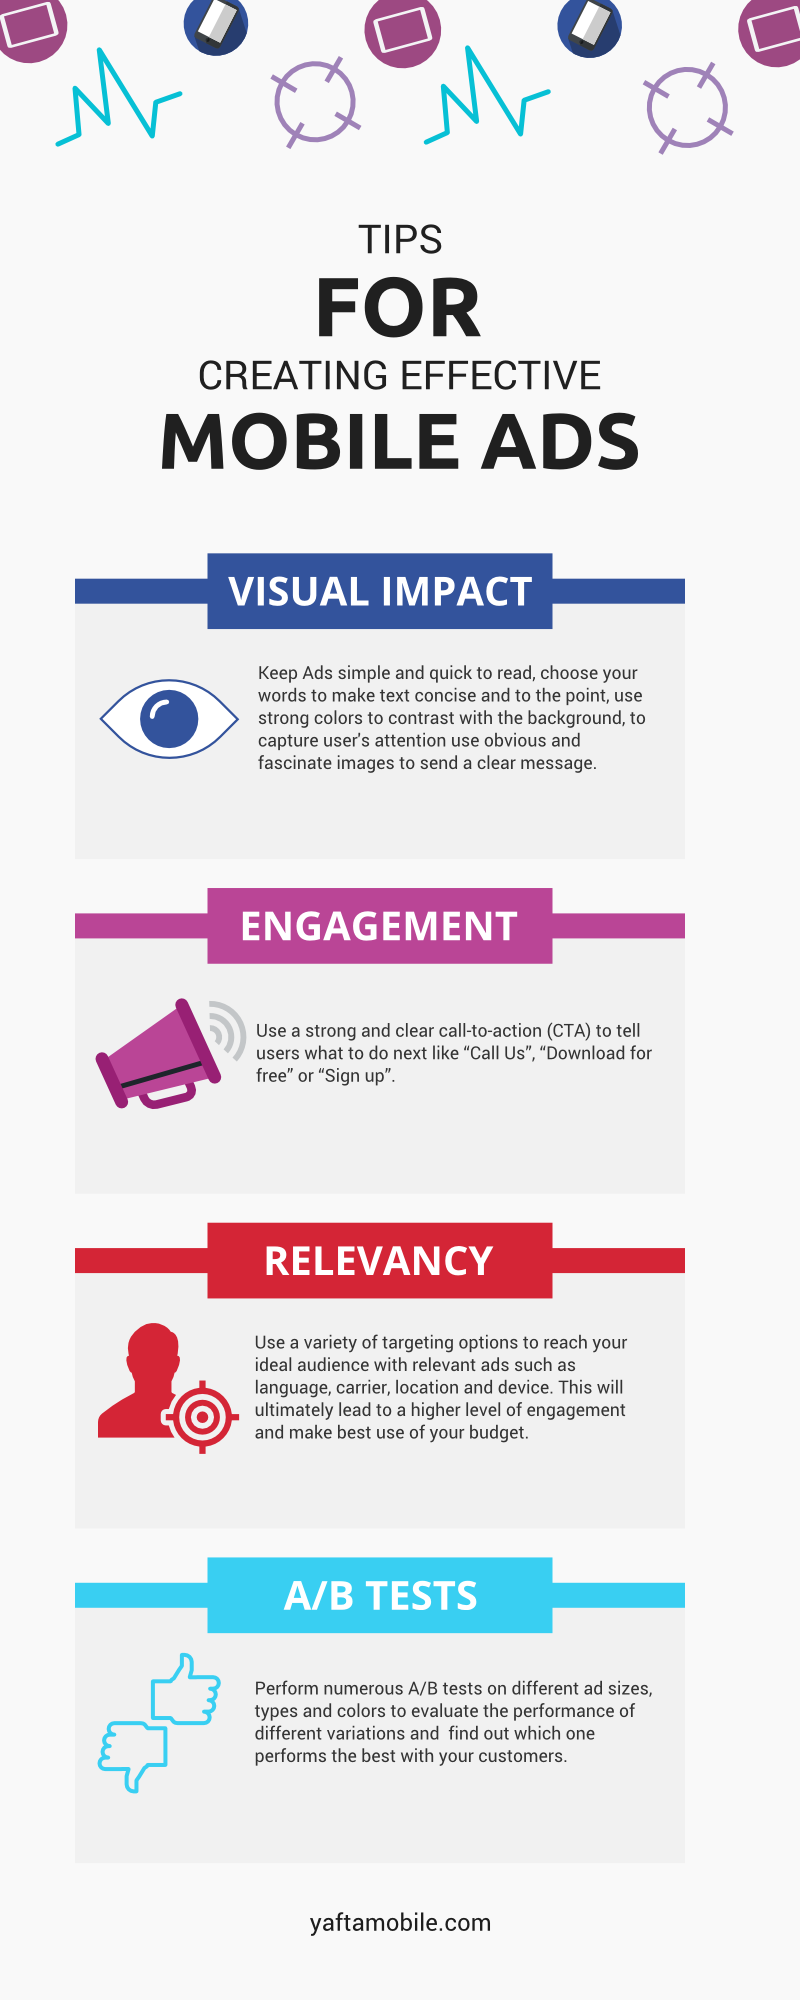 Infographic: Tips for Creating Effective Mobile Ads